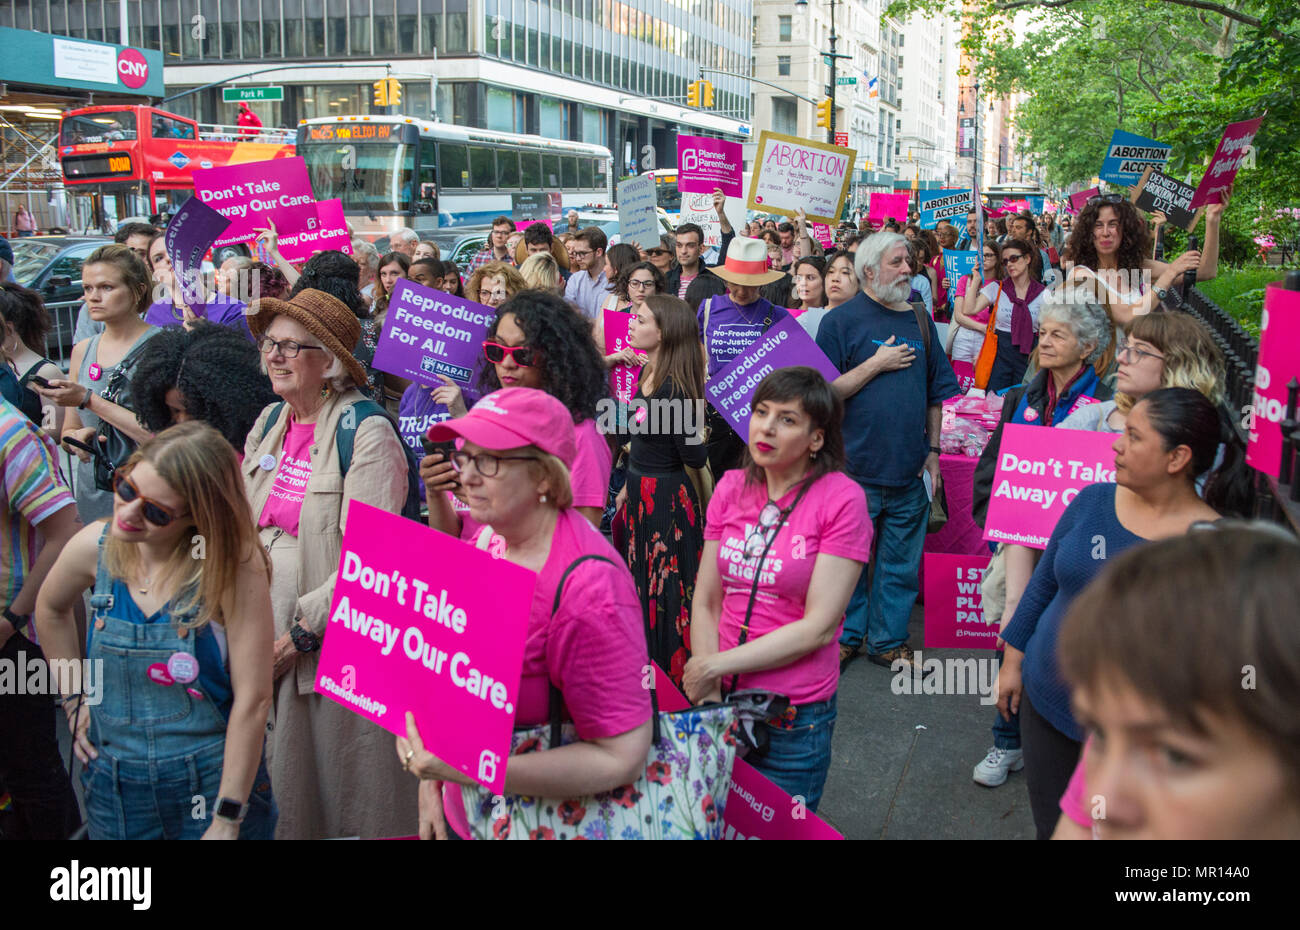 Supporters with signs at a Title X (Title Ten) gag rule rally in New York City, hosted by Planned Parenthood of New York City on May 24th 2018, reacting the President Trump's attempt to ban Medicaid and federal funding to medical providers who provide full, legal medical information to patients wanting or needing abortion services. - Stock Image